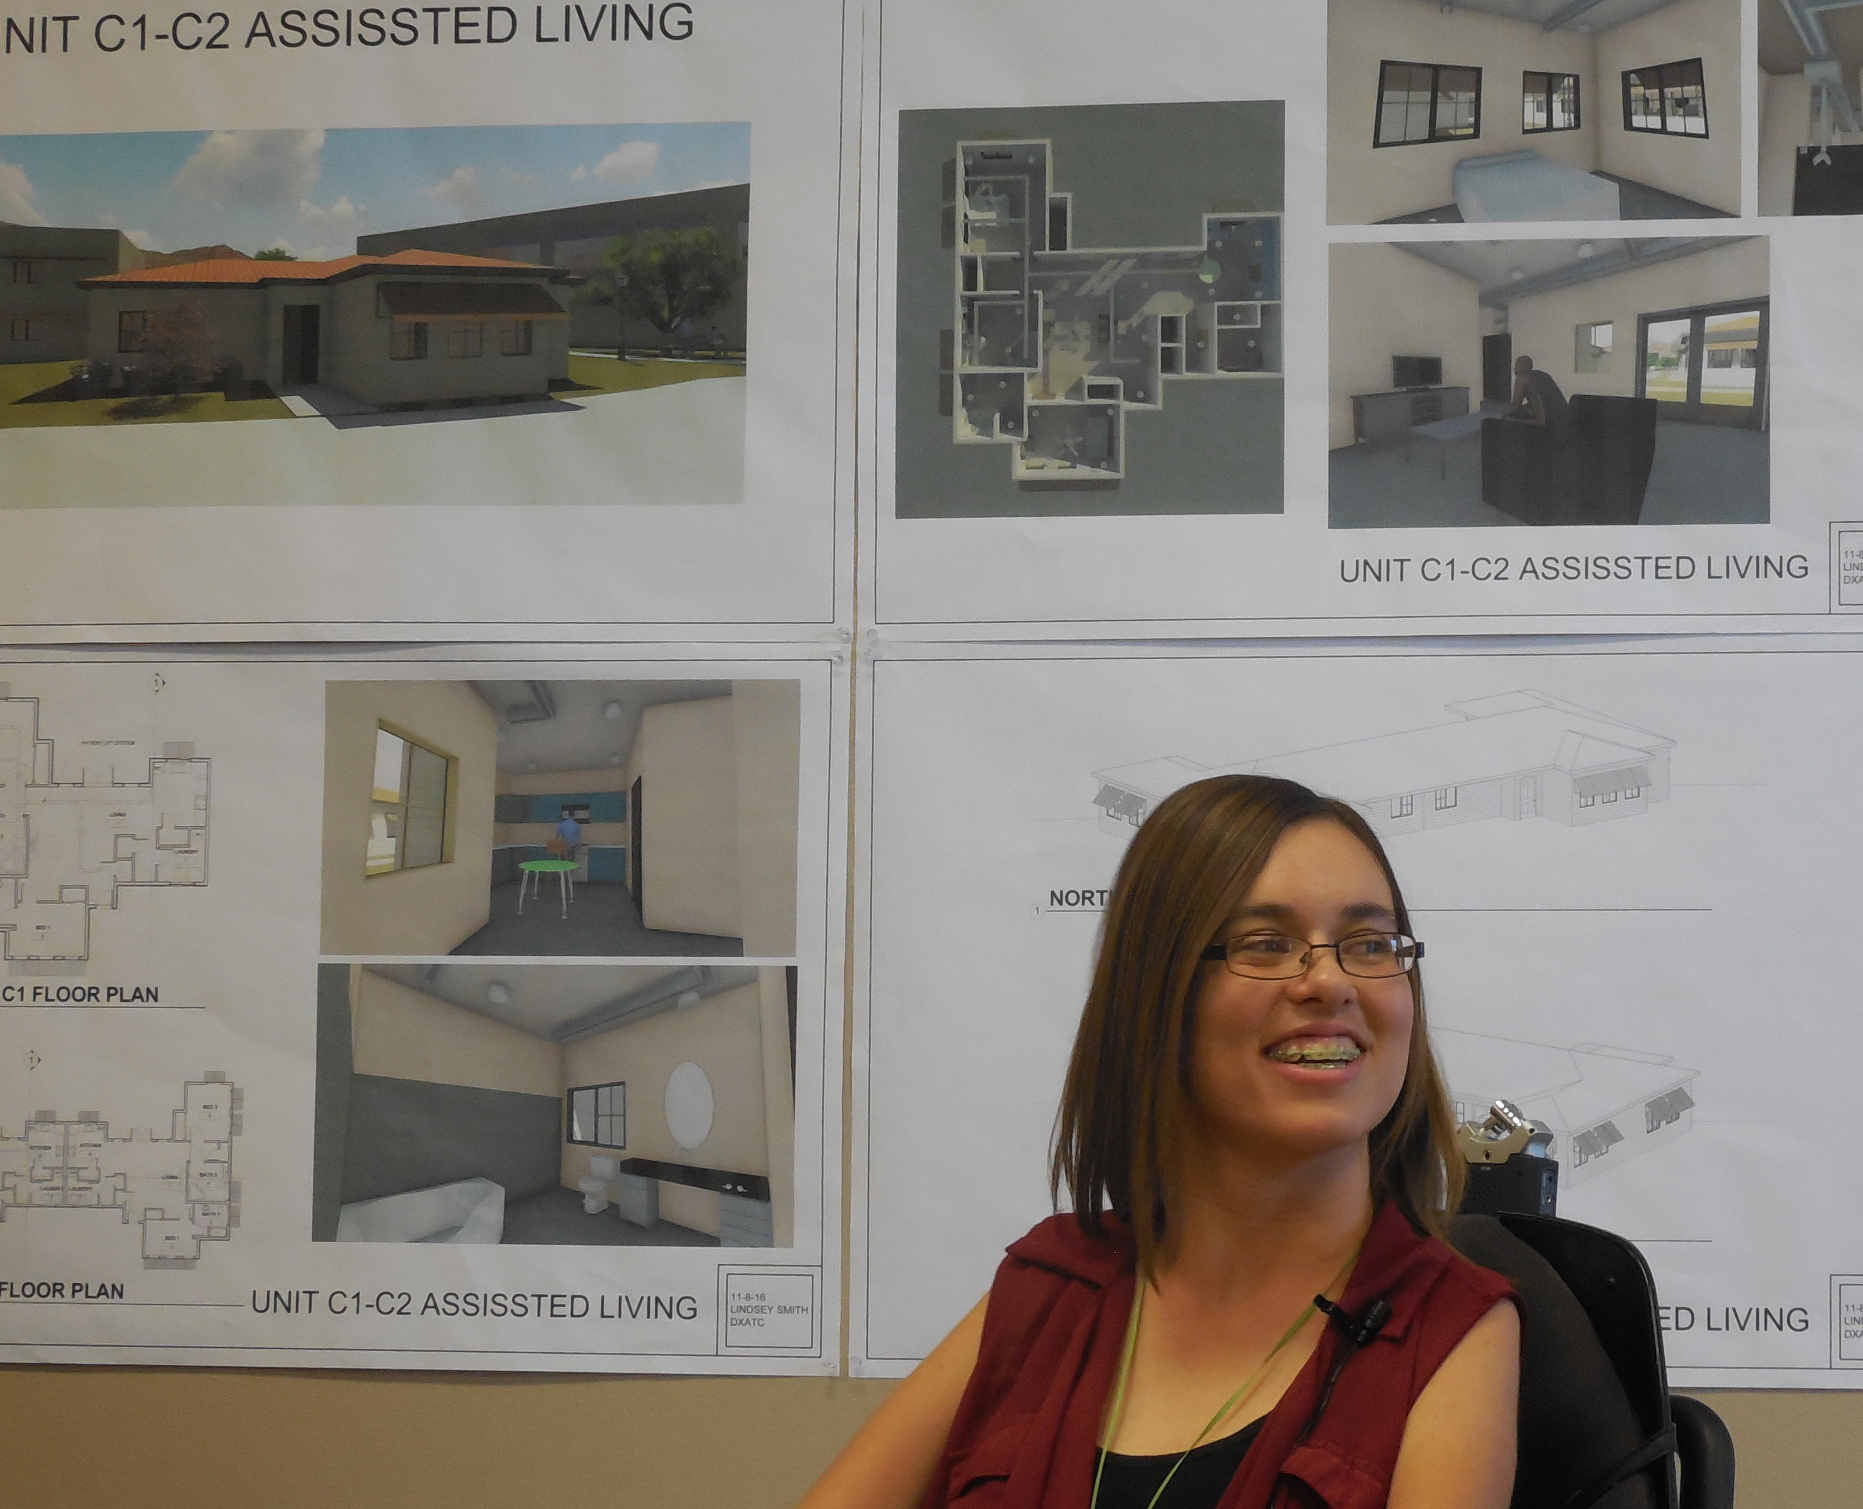 Lindsey Smith presents her final project in Drafting and Design at Dixie Applied Technology College, St. George, Utah, Nov. 8, 2016 | Photo by Julie Applegate, St. George News